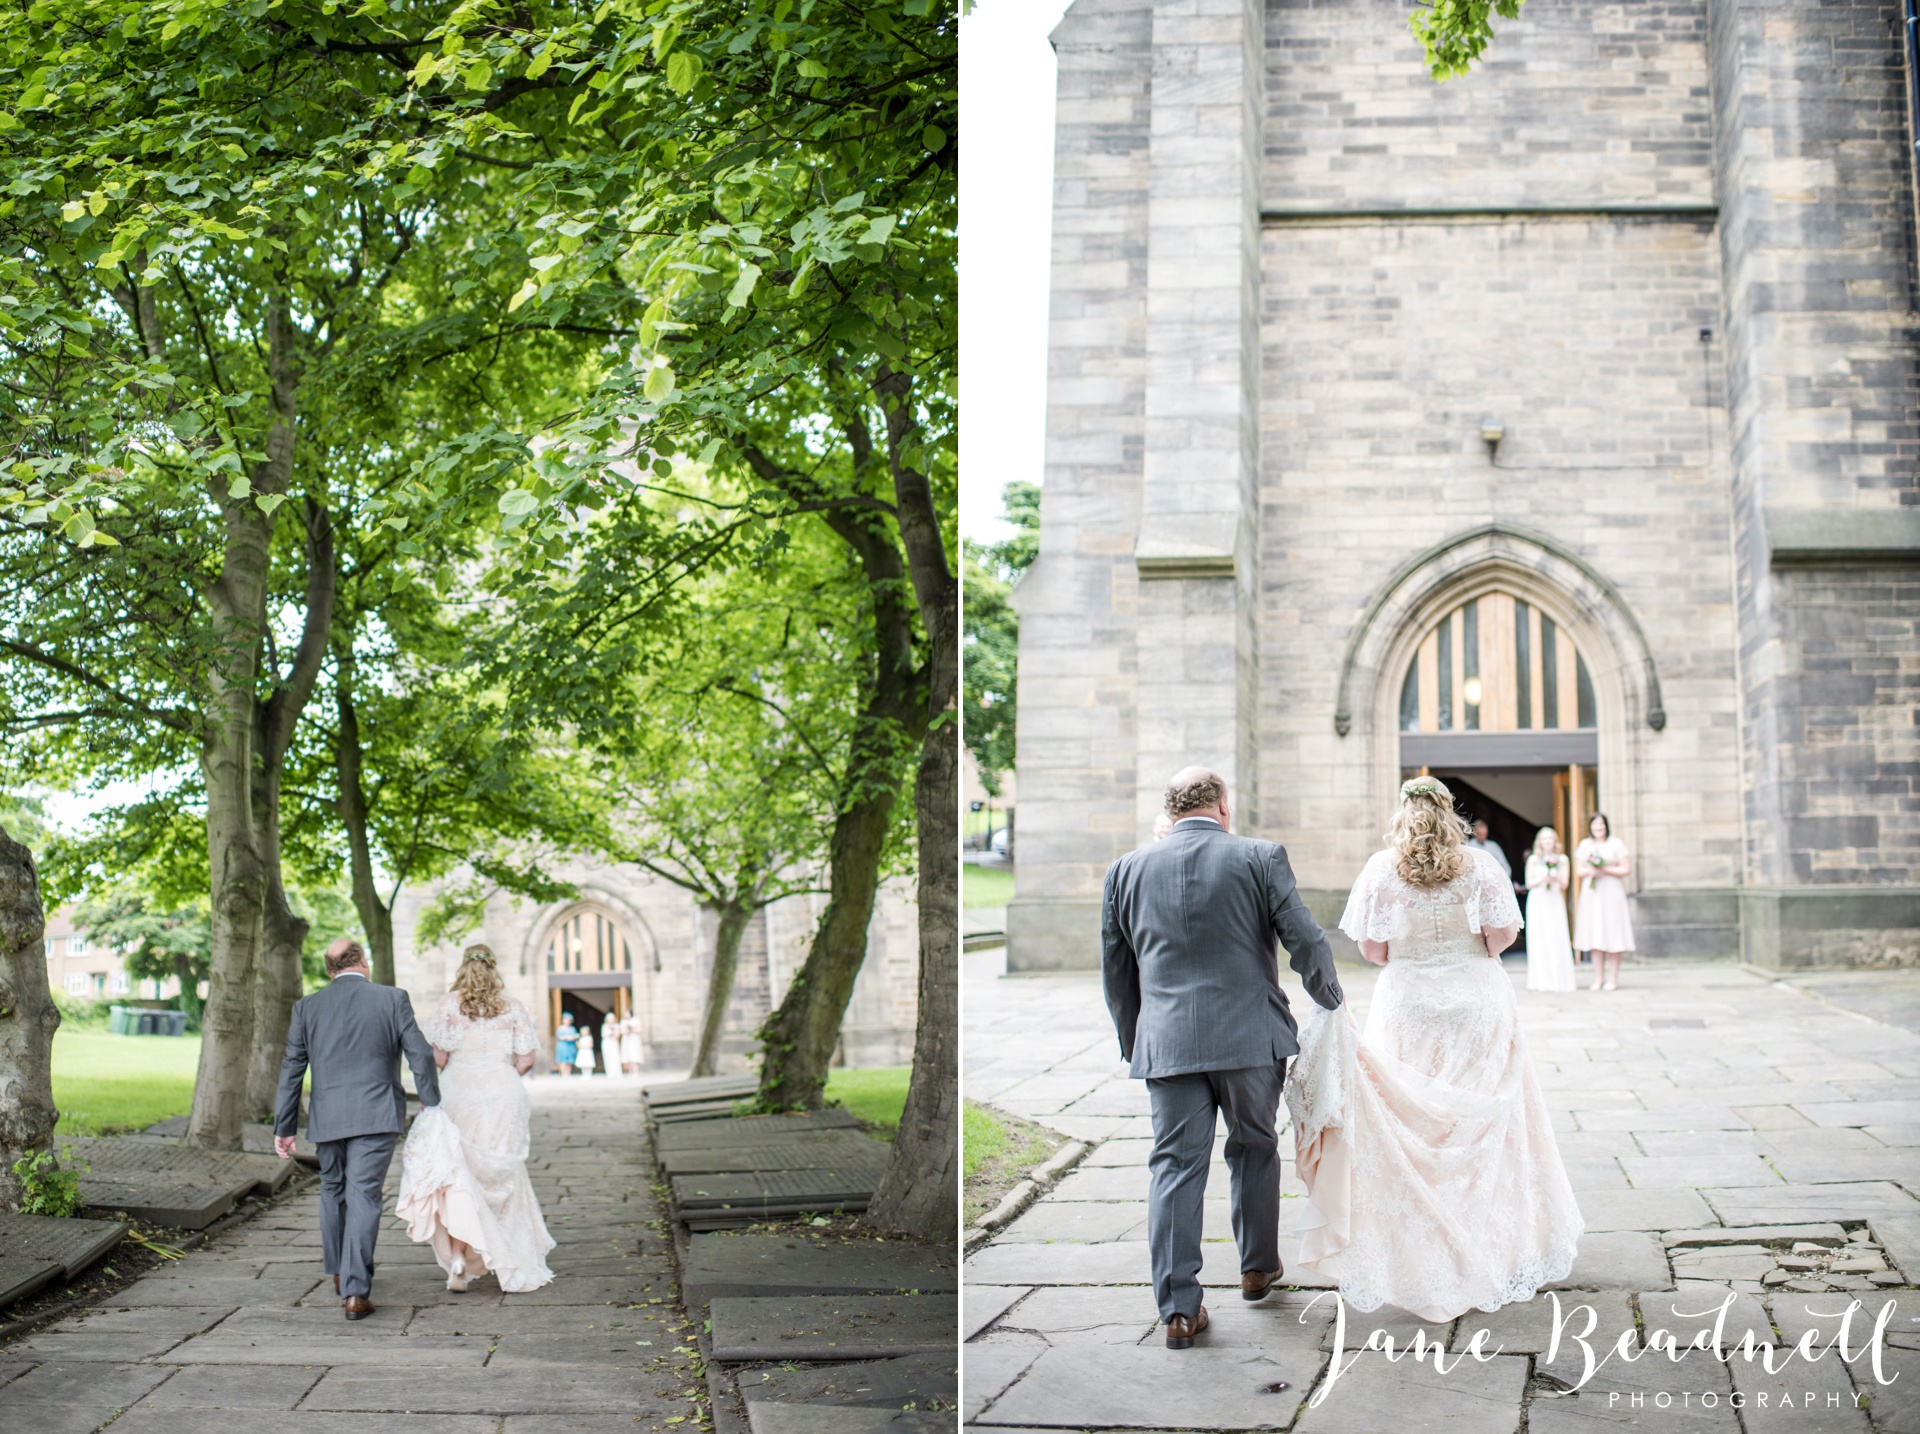 Yorkshire Wedding Photography the cheerful Chilli Barn Wedding by Jane Beadnell Photography_0054